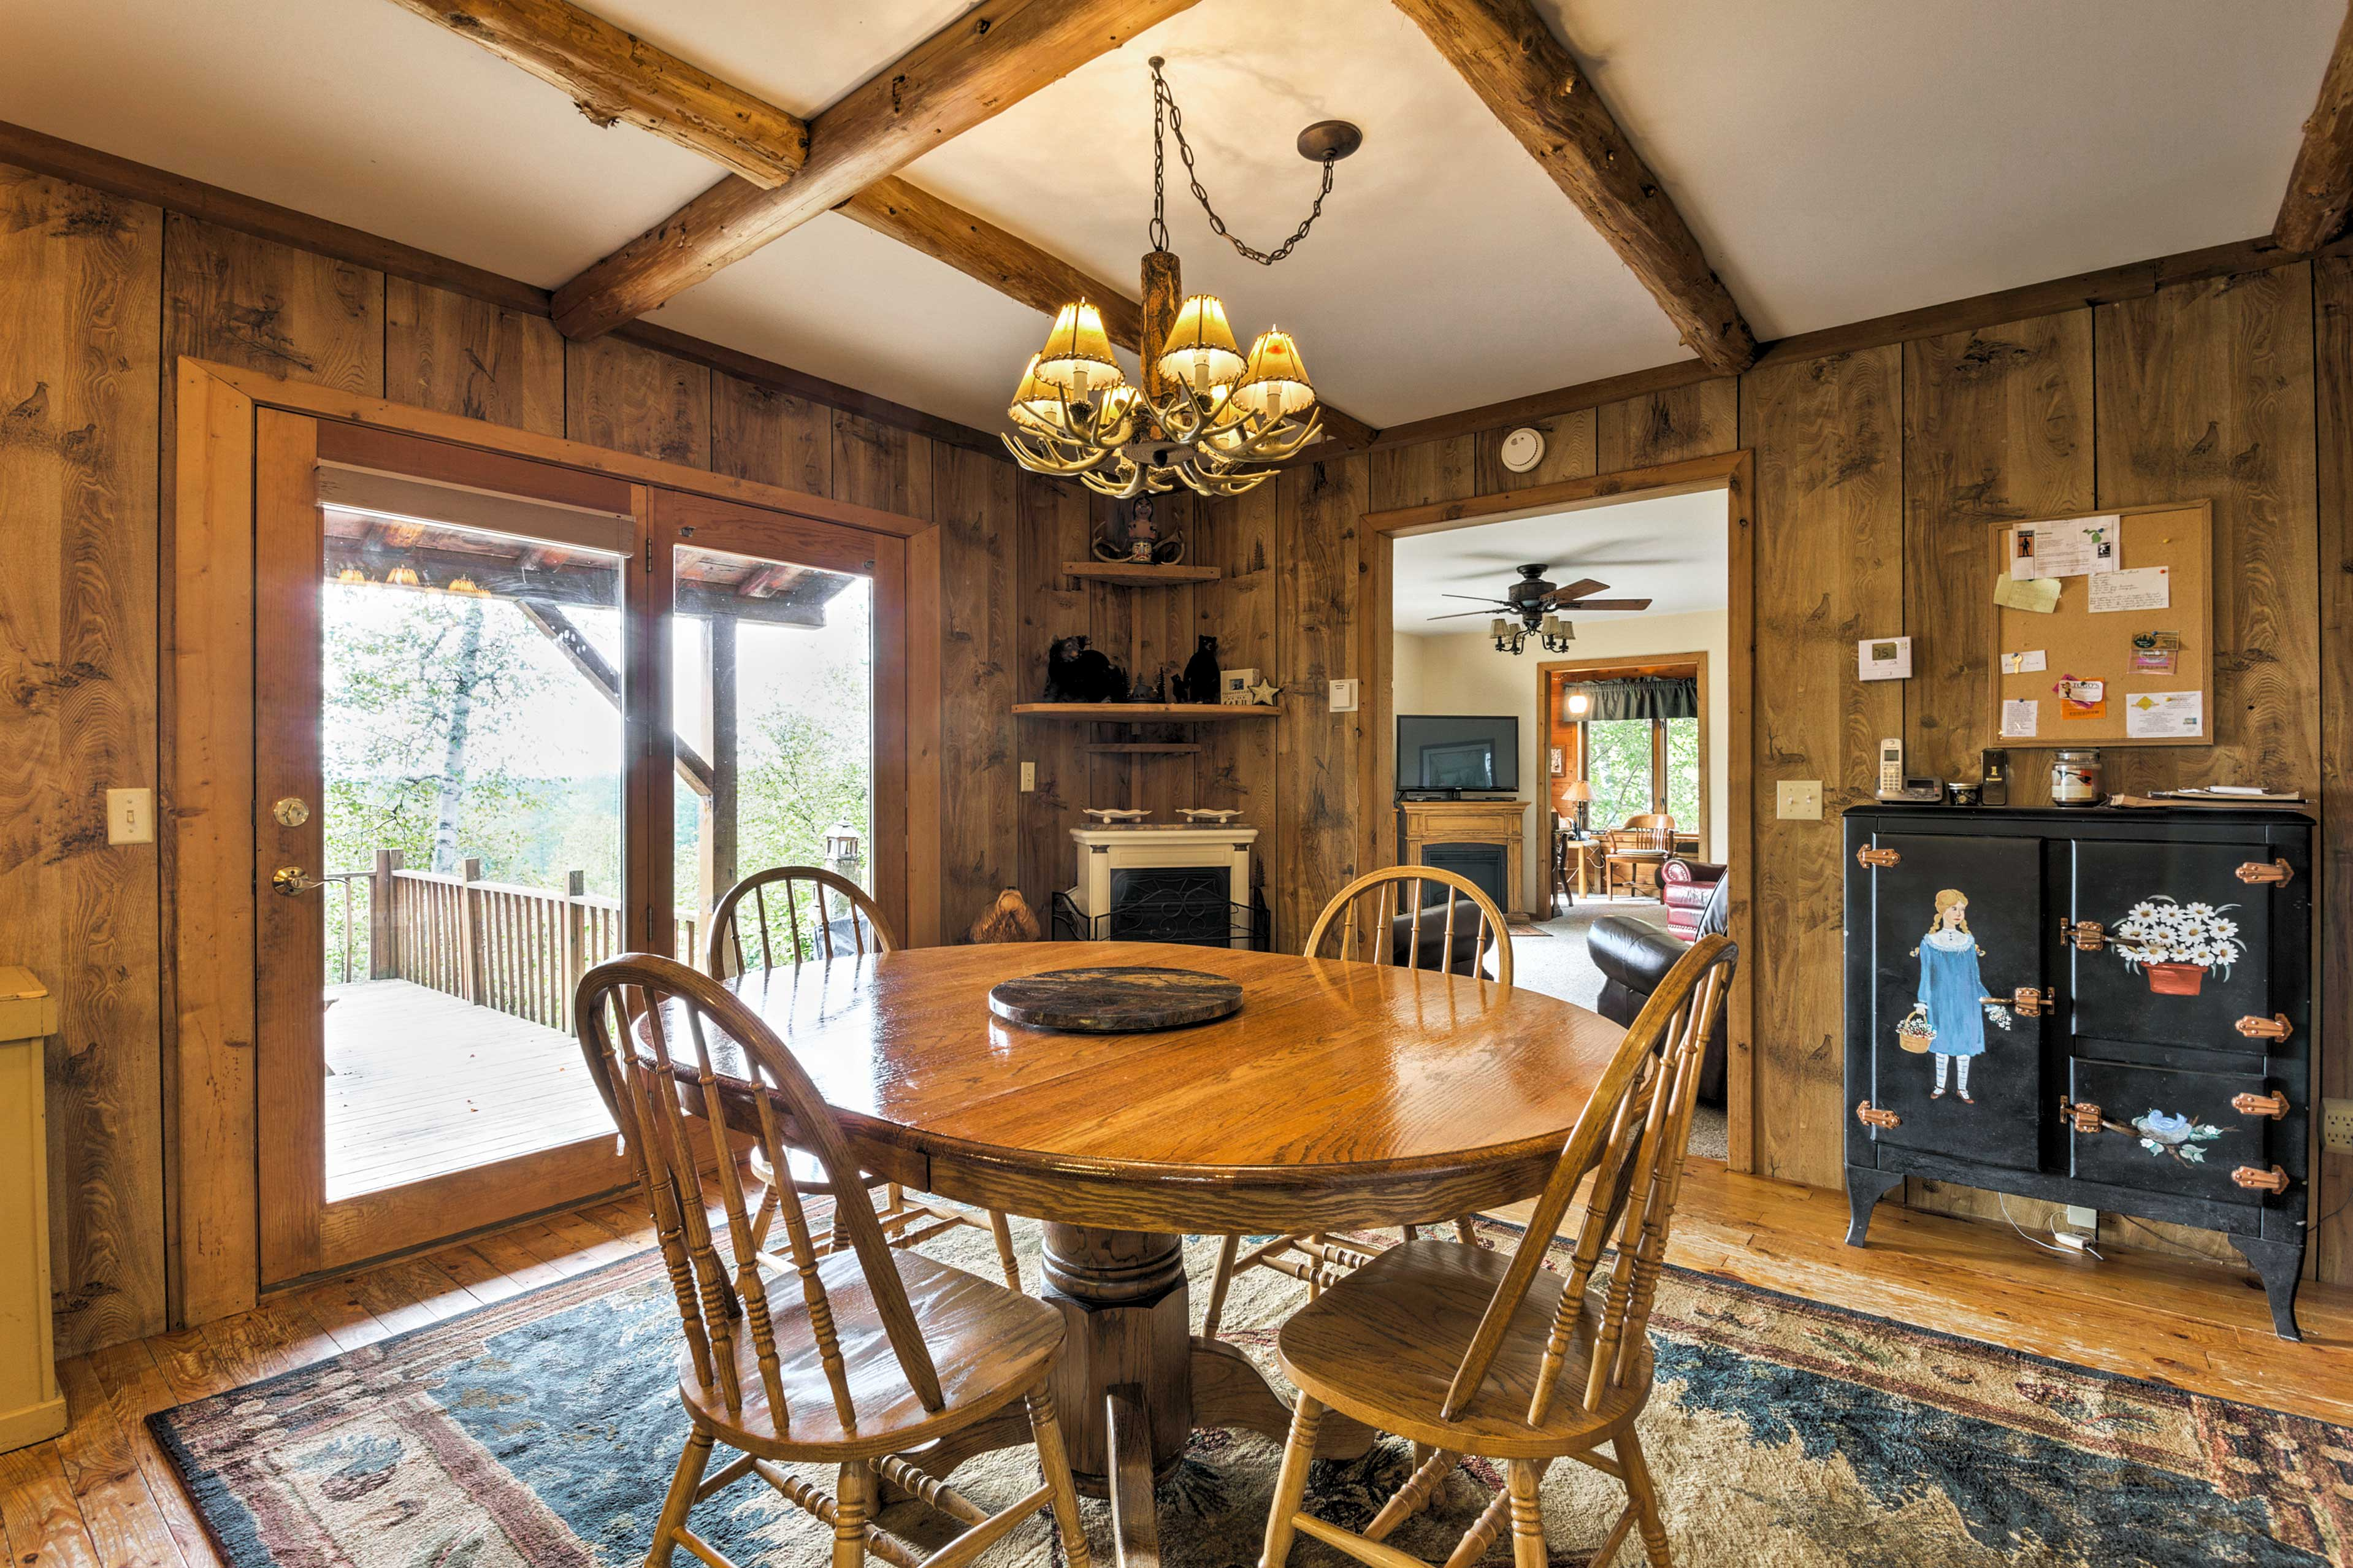 Enjoy delicious meals on the 4-person dining room table.